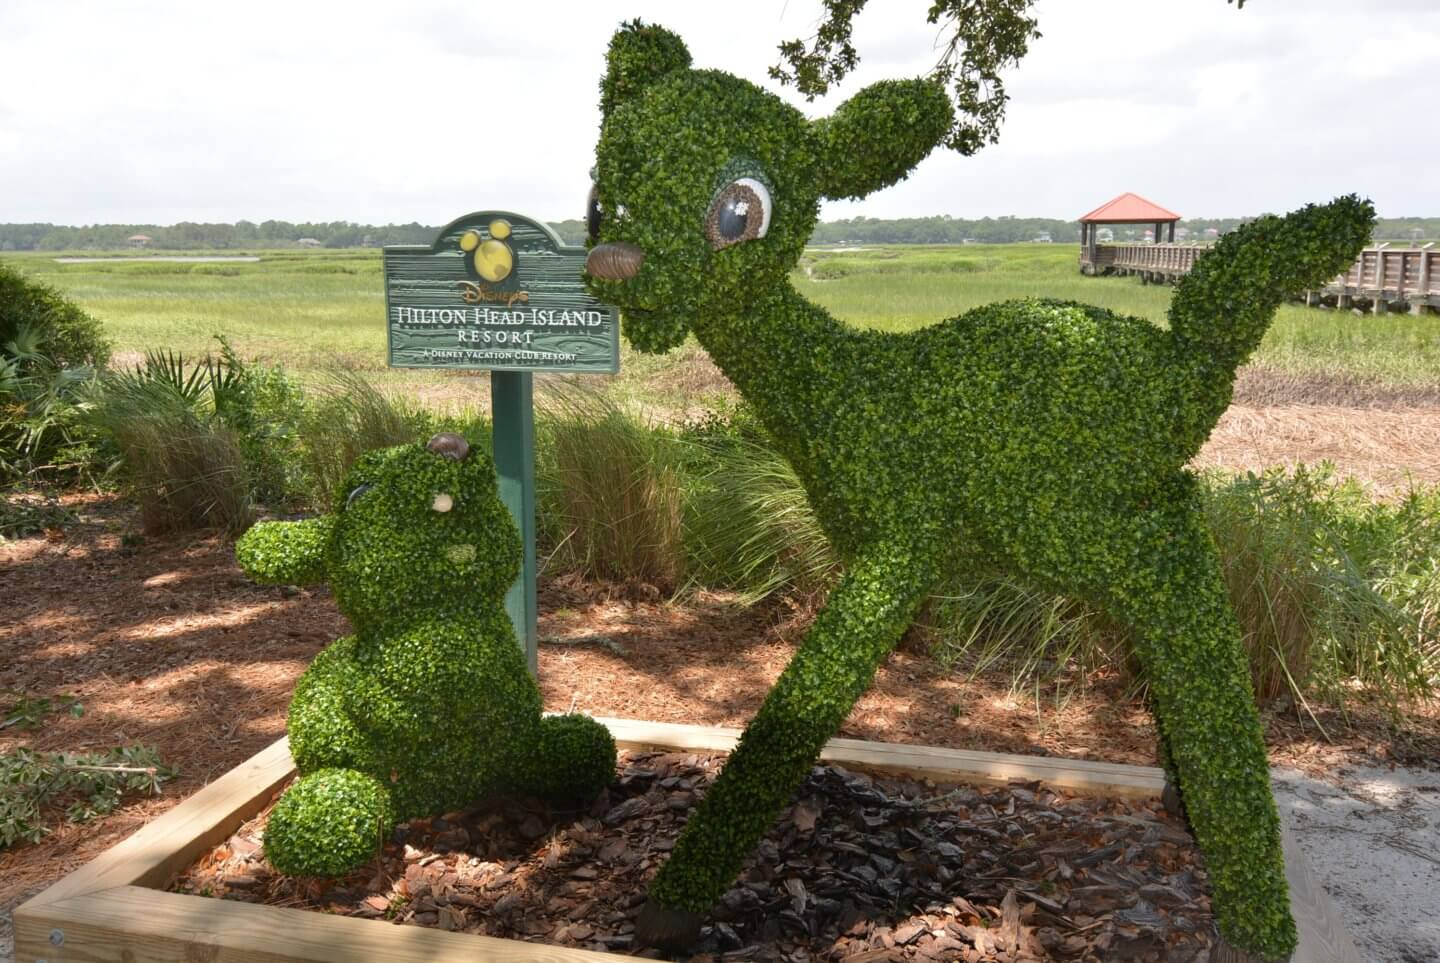 Bambi and Thumper topiary statues with a Disney's Hilton Head Island Resort sign.